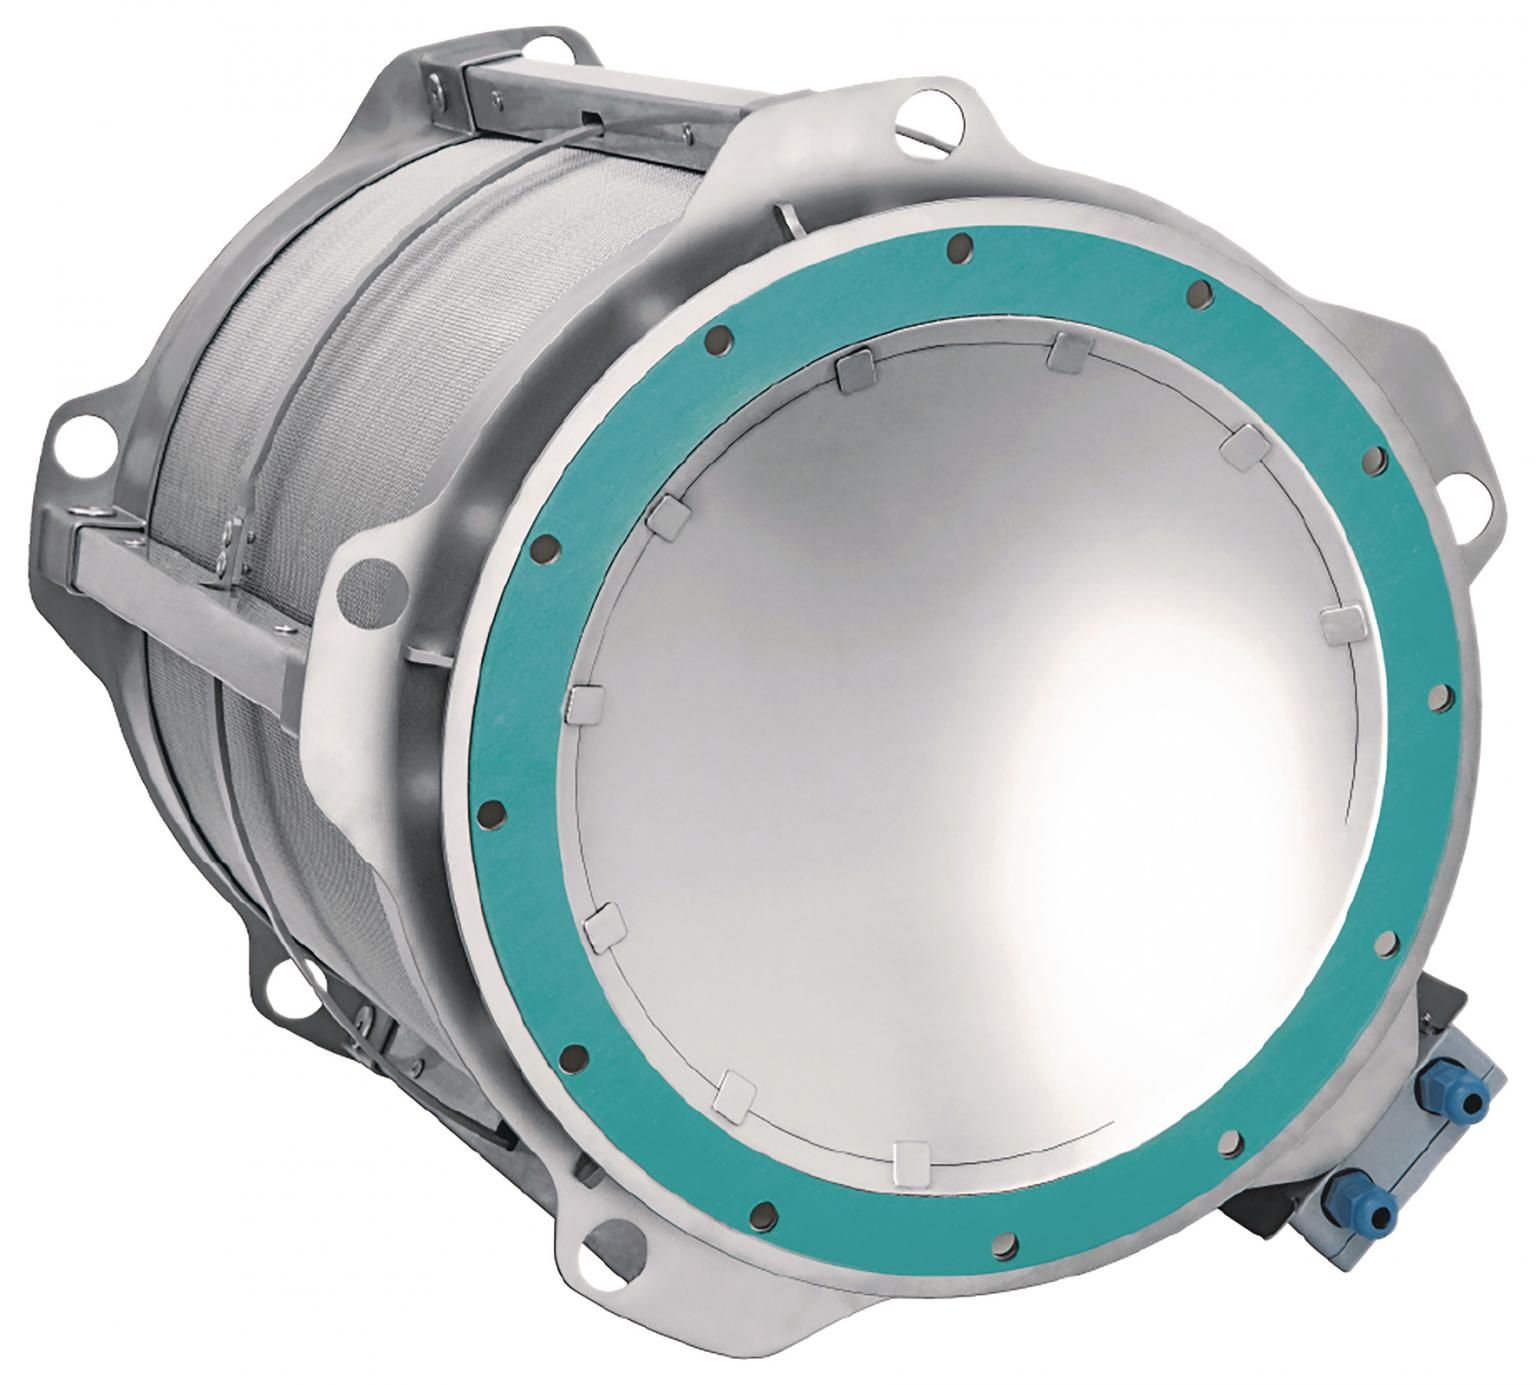 The Q-Rohr has been certified for use with metal dusts